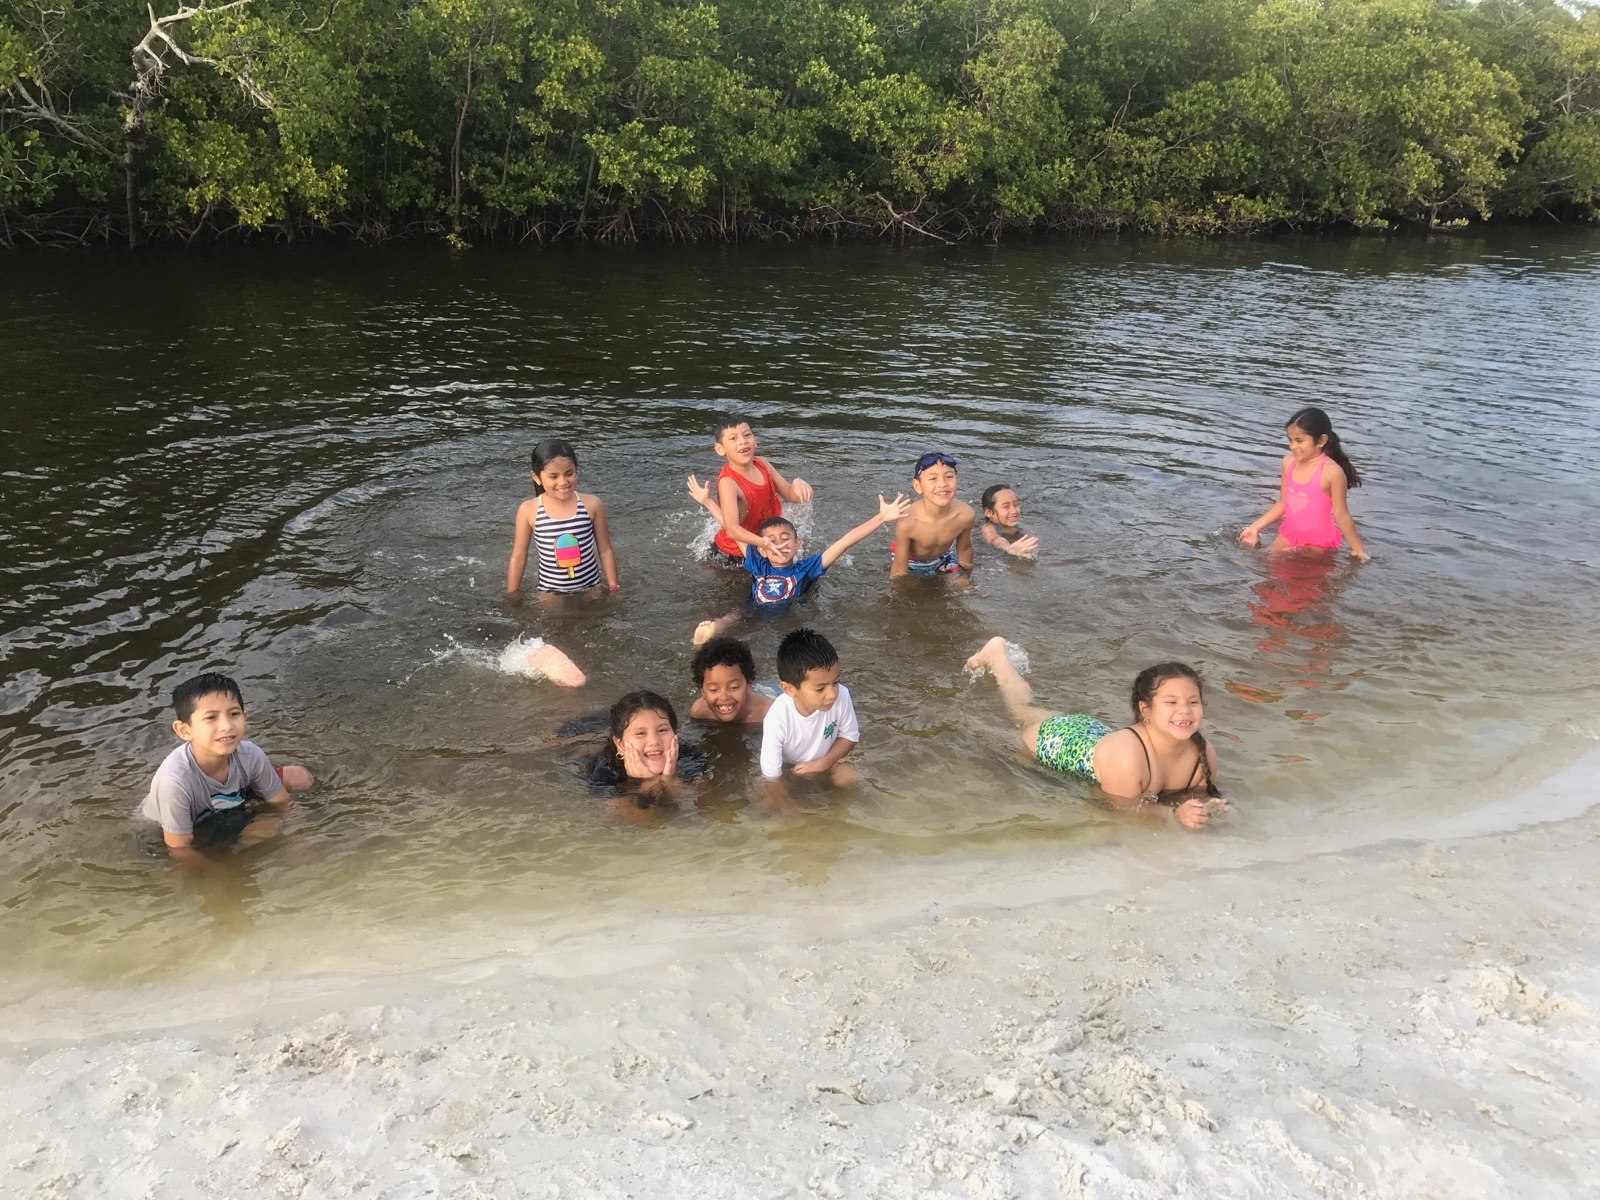 Students from the Heights Foundation enjoyed a scholarship-supported educational outing with Sanibel Sea School.